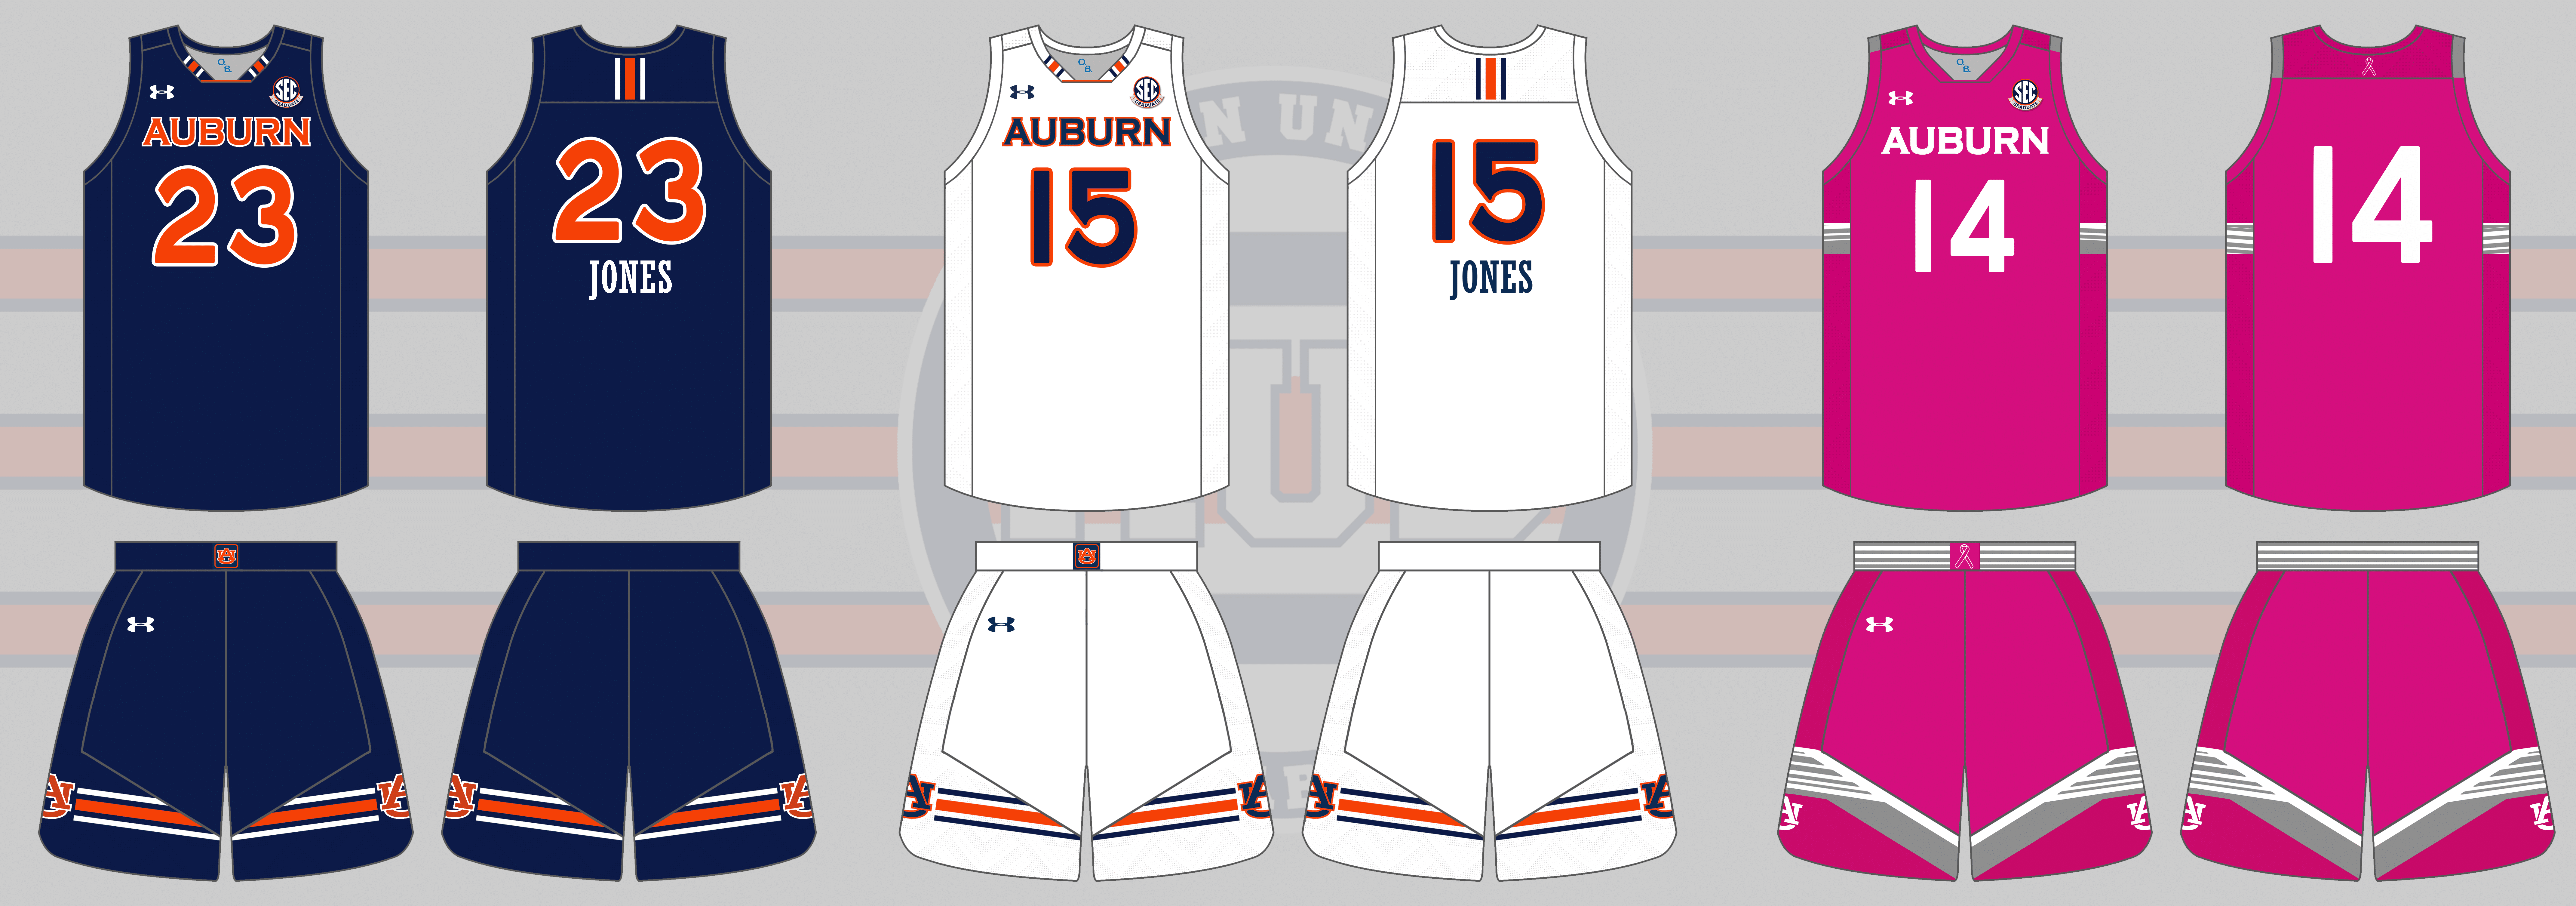 24a6ef574d8 Auburn Athletics  1999 vs 2018 - Auburn Uniform Database